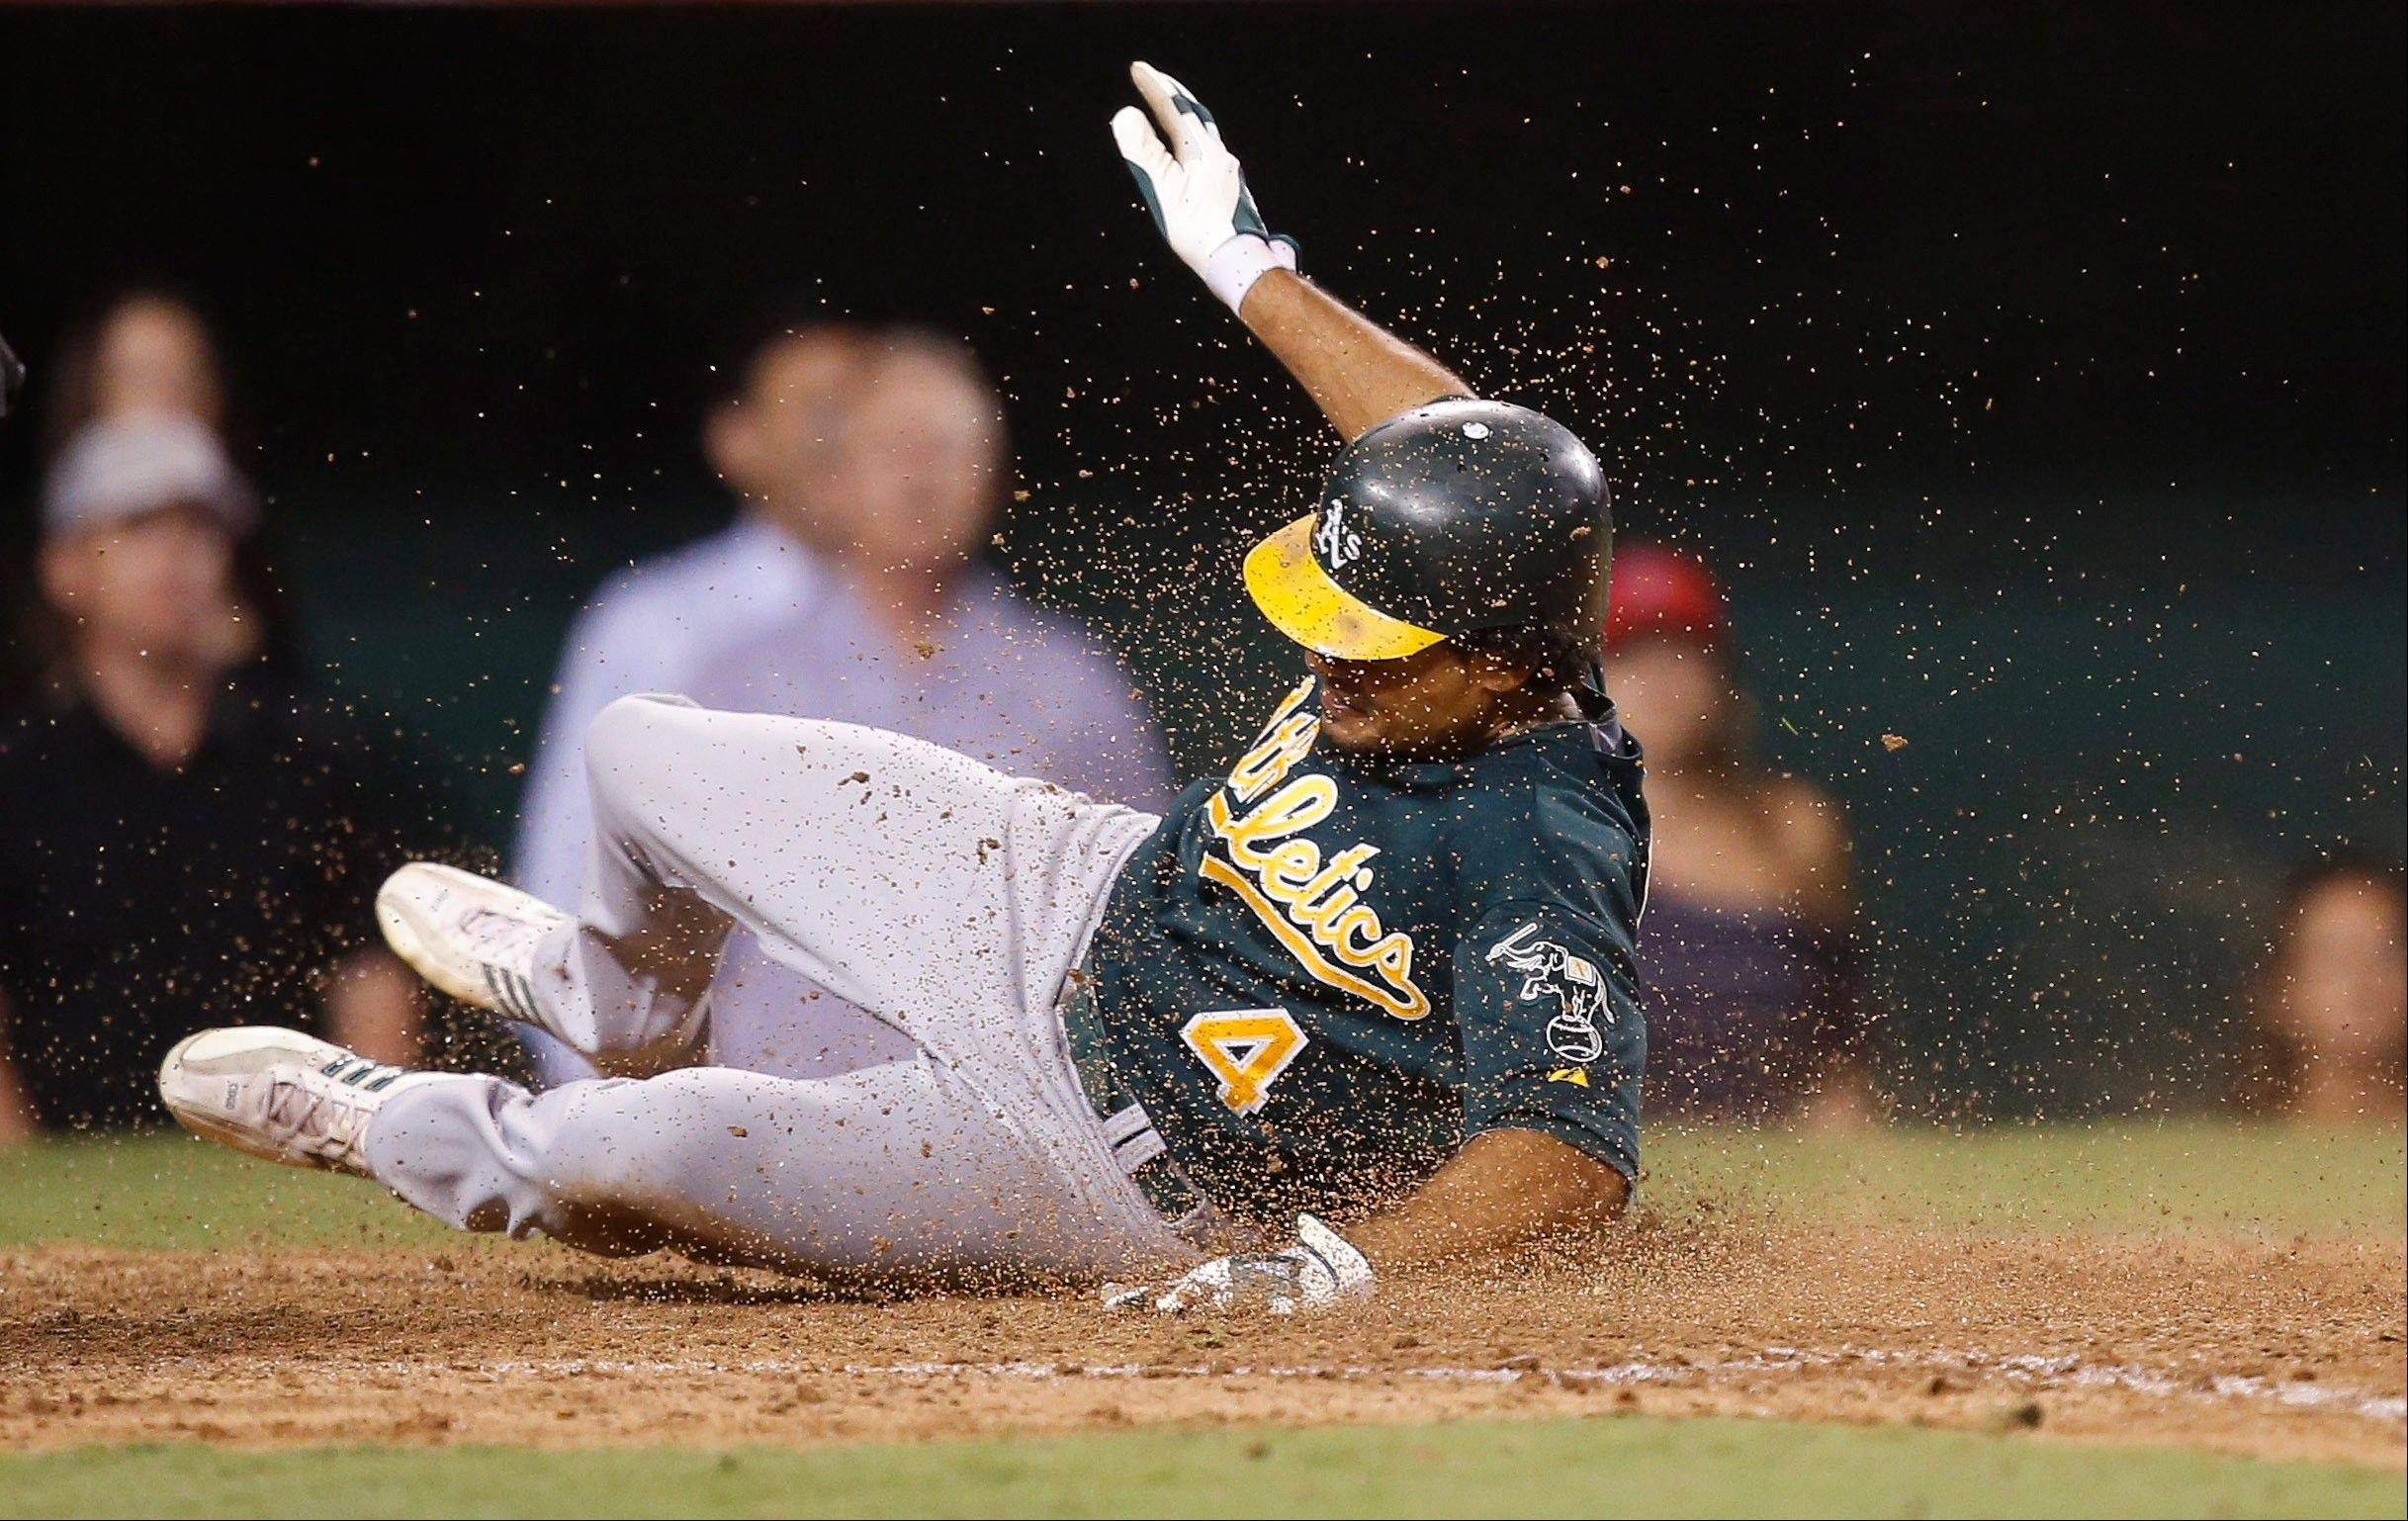 Oakland's Coco Crisp scores on a fielding error by Los Angeles Angels right fielder Torii Hunter in the ninth inning Tuesday in Anaheim, Calif.